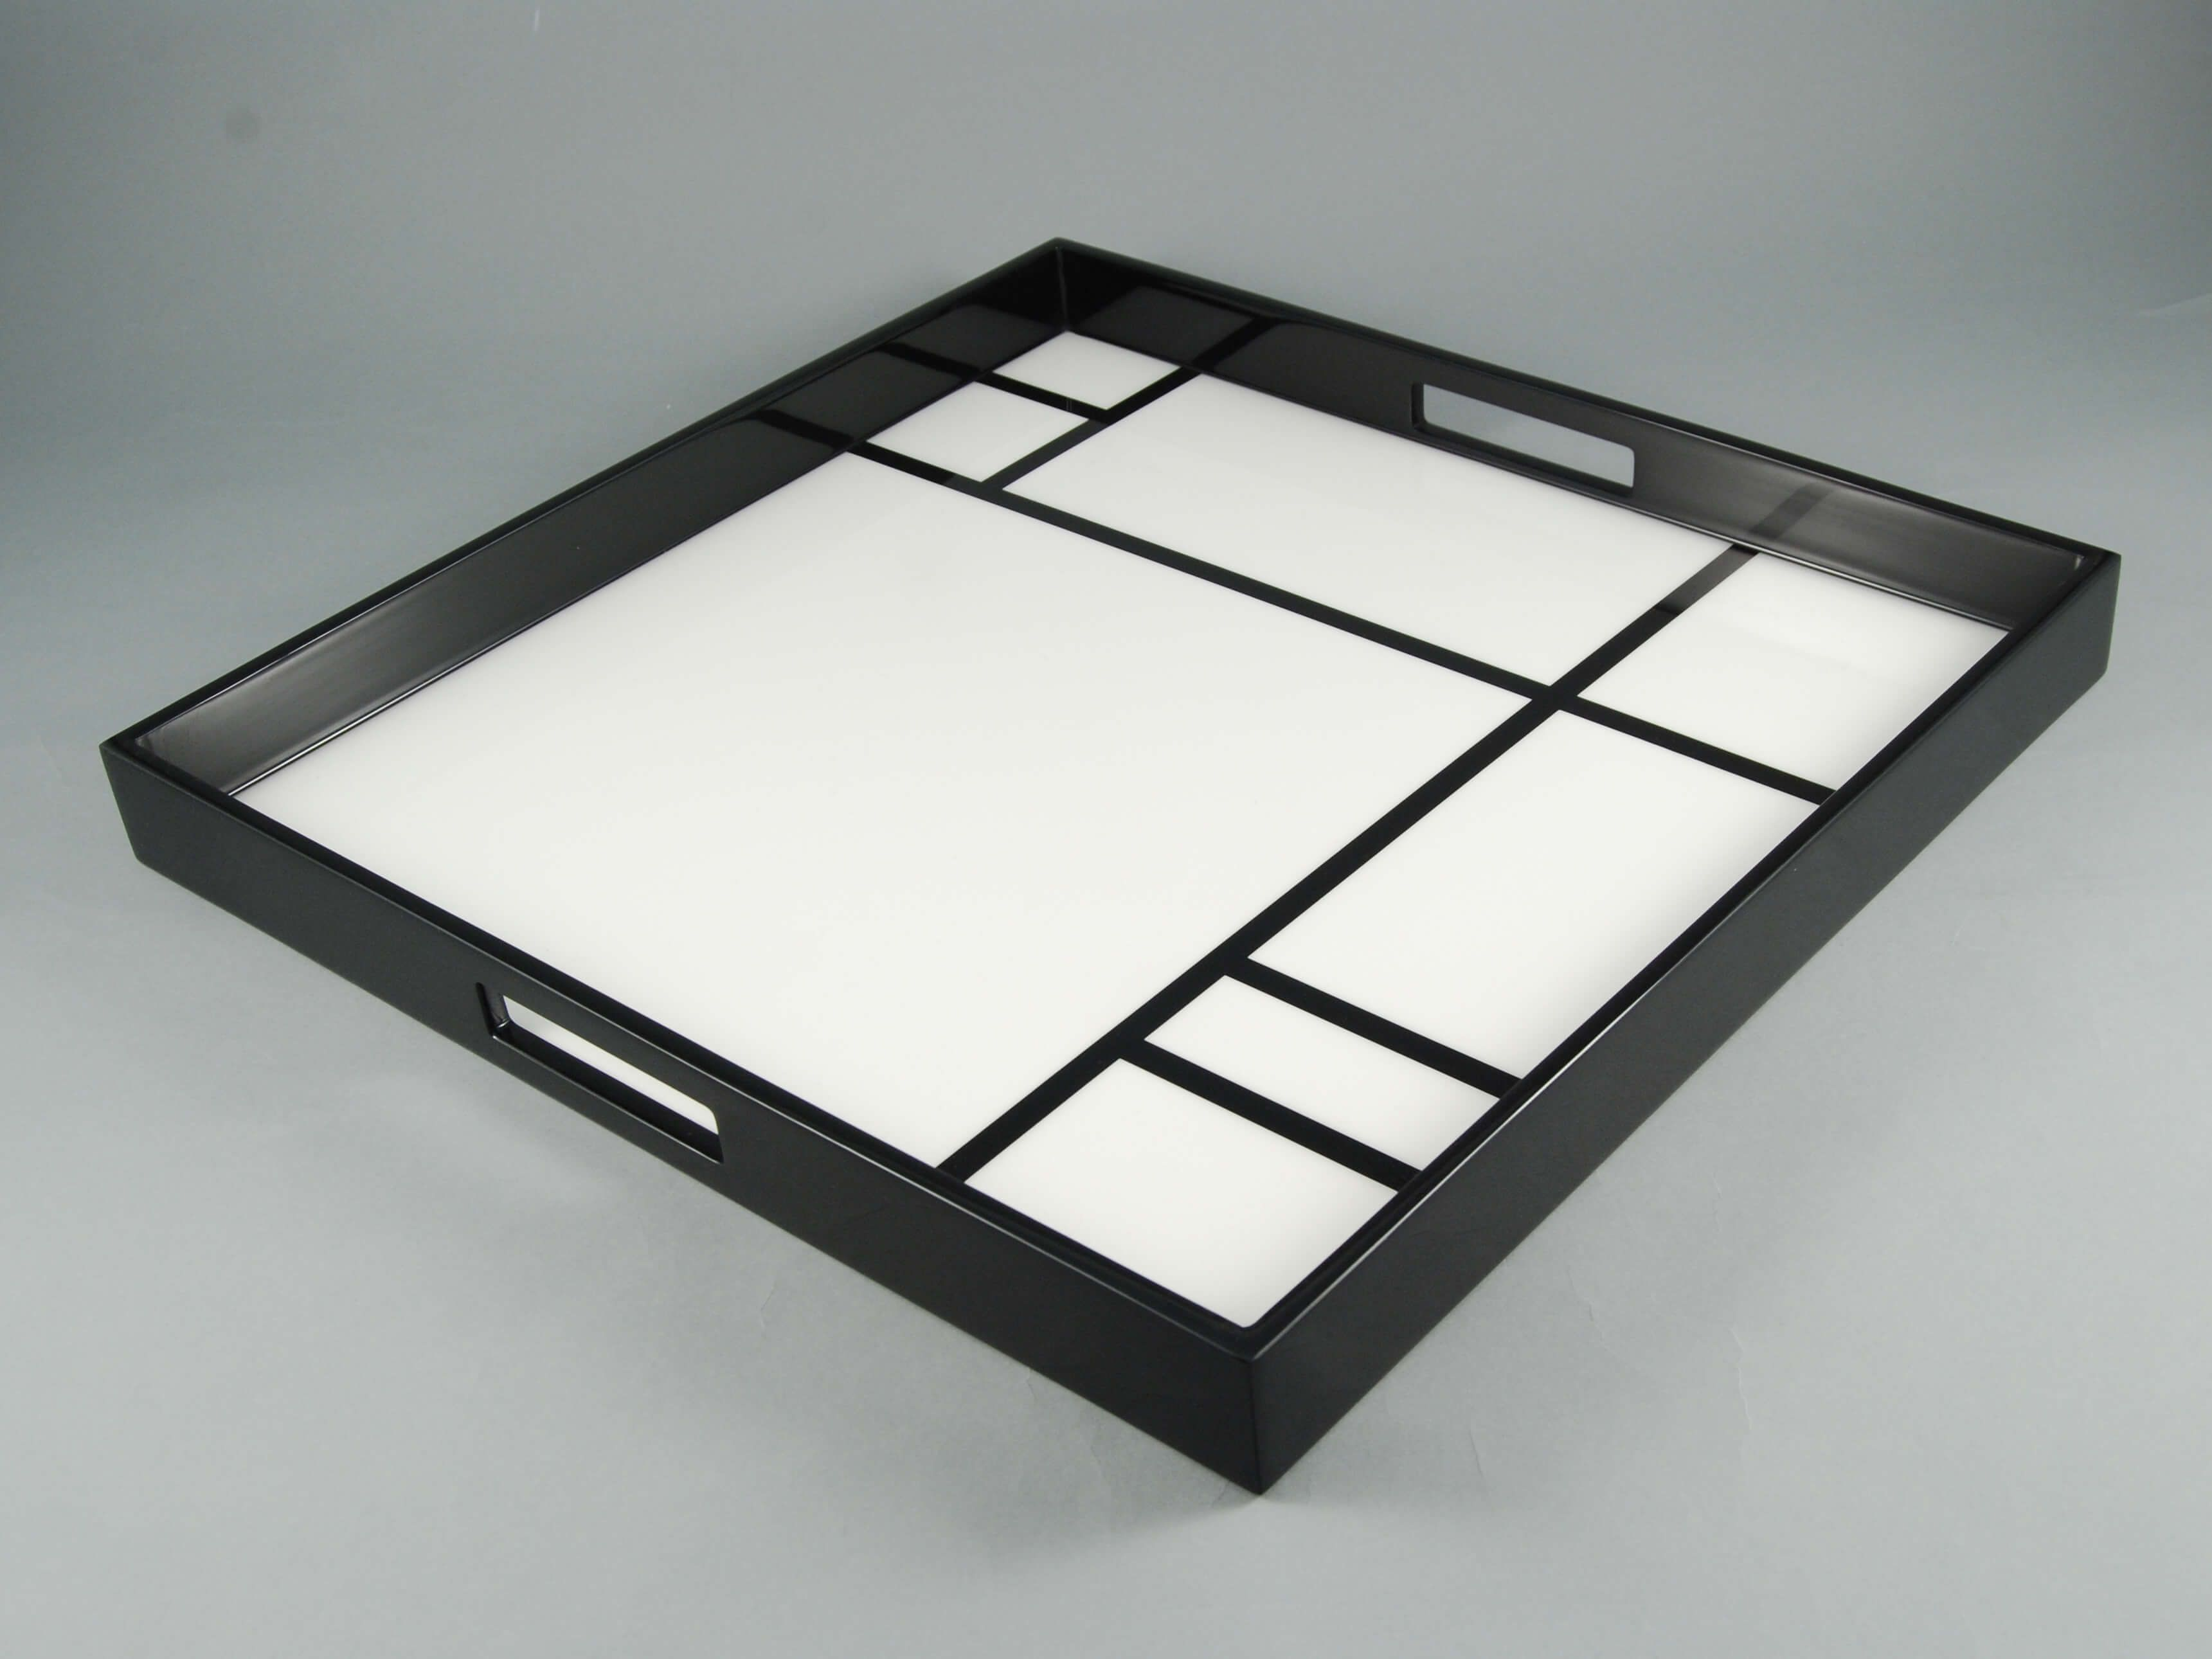 Black Decorative Tray Custom This Decorative Tray Is Featuring A Painting Of Piet Mondrian Inspiration Design